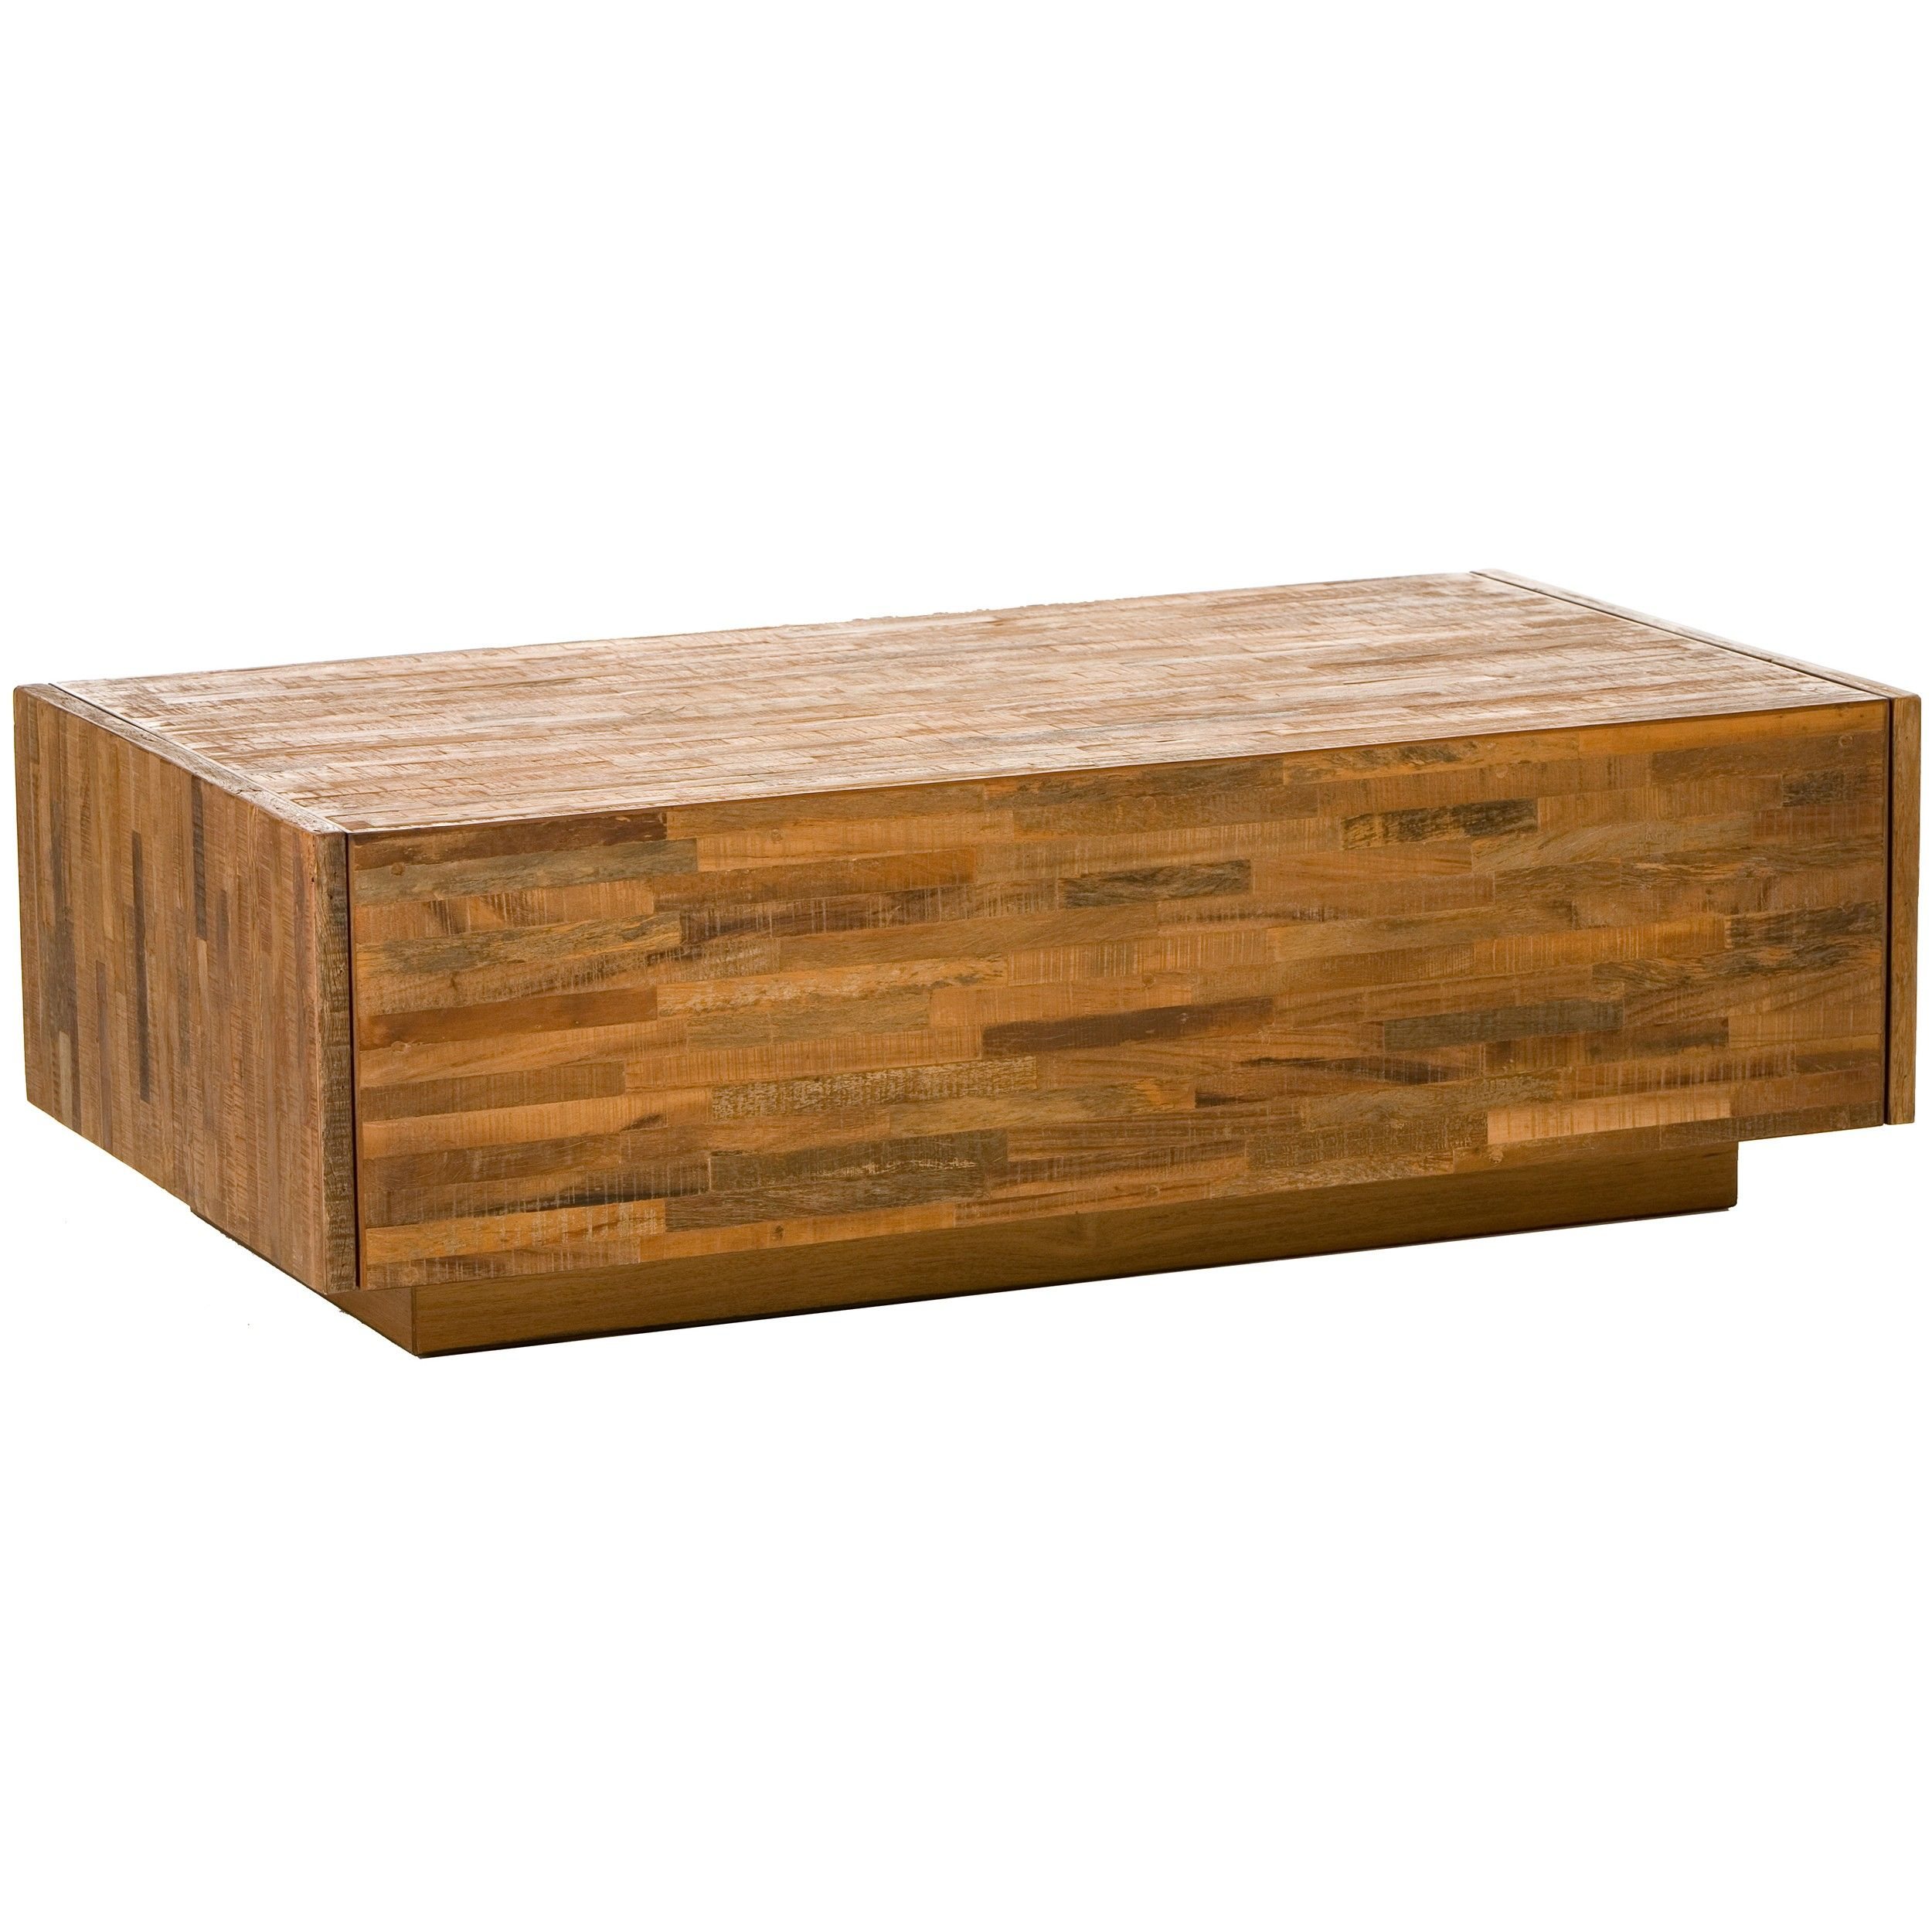 Santomer Block Coffee Table undefined